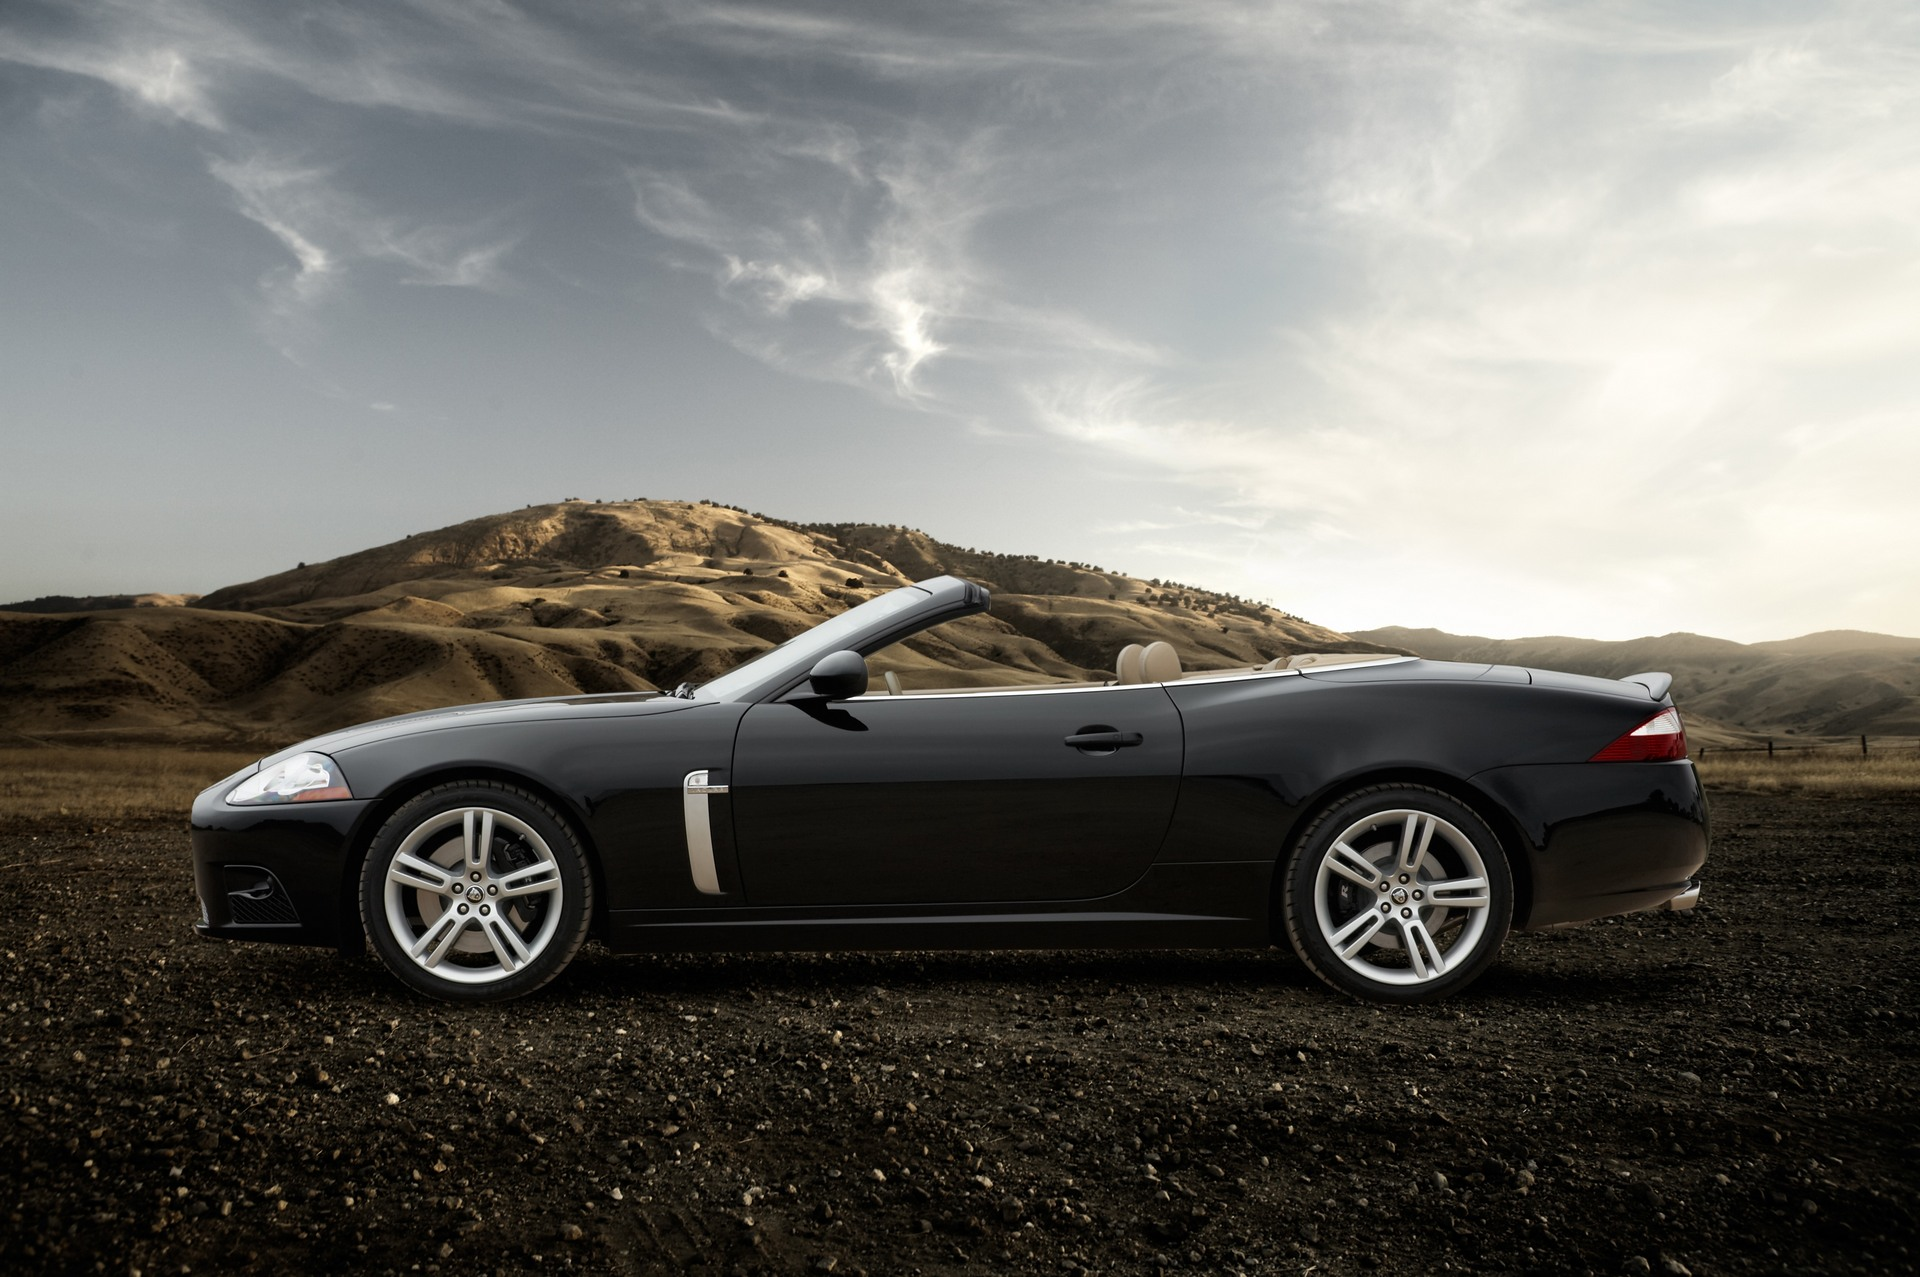 2008 Jaguar XK News and Information | conceptcarz.com